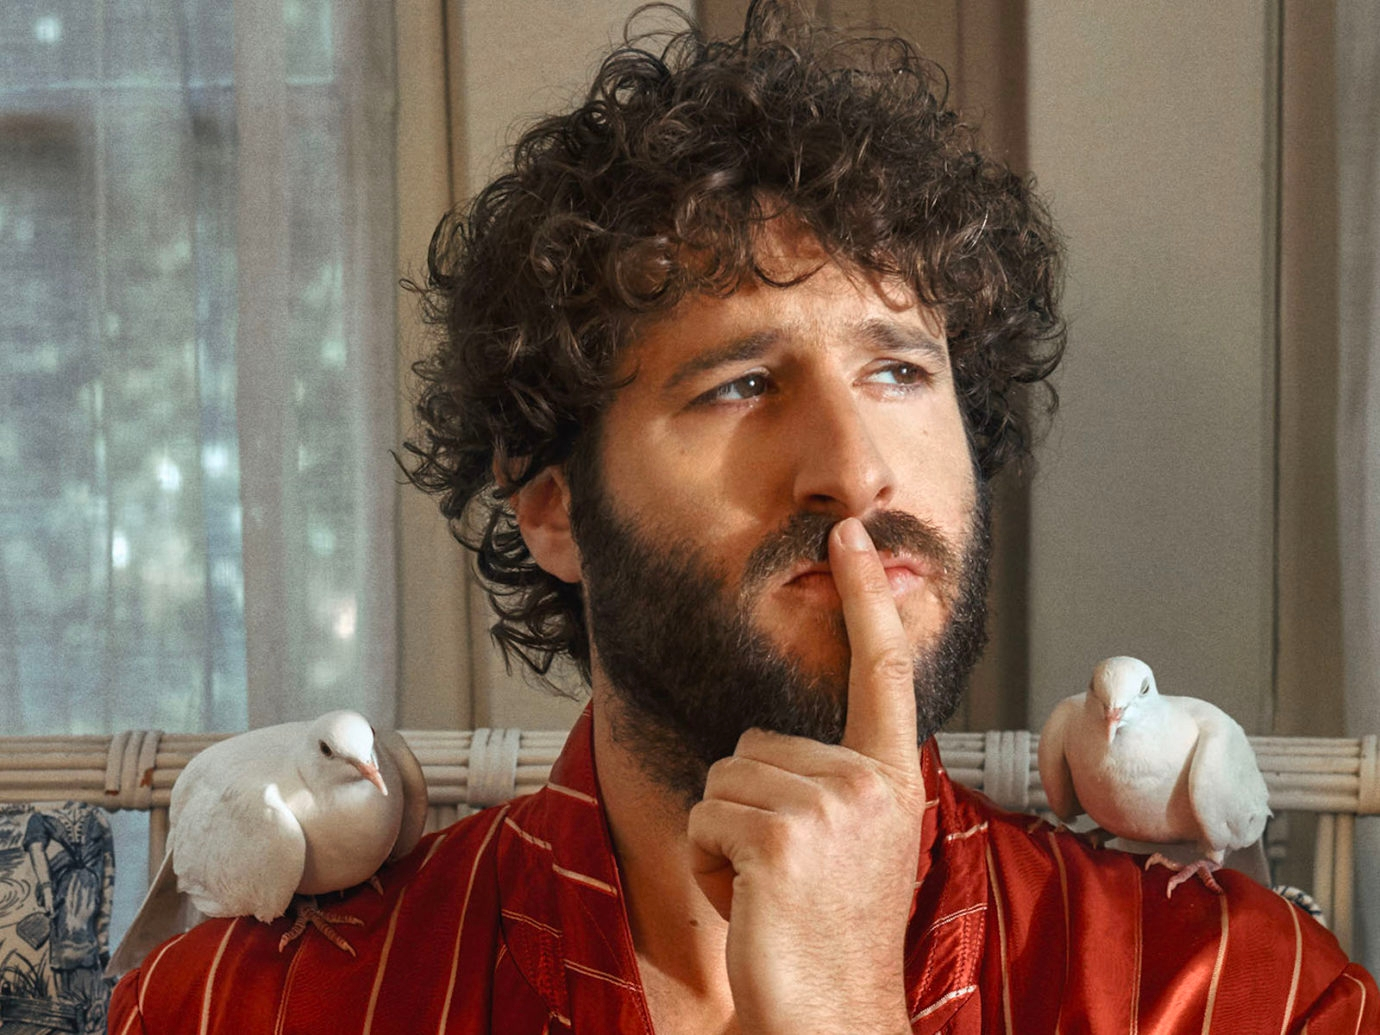 Comedic Rapper Lil Dicky Is Getting His Own Fx Show Jewish